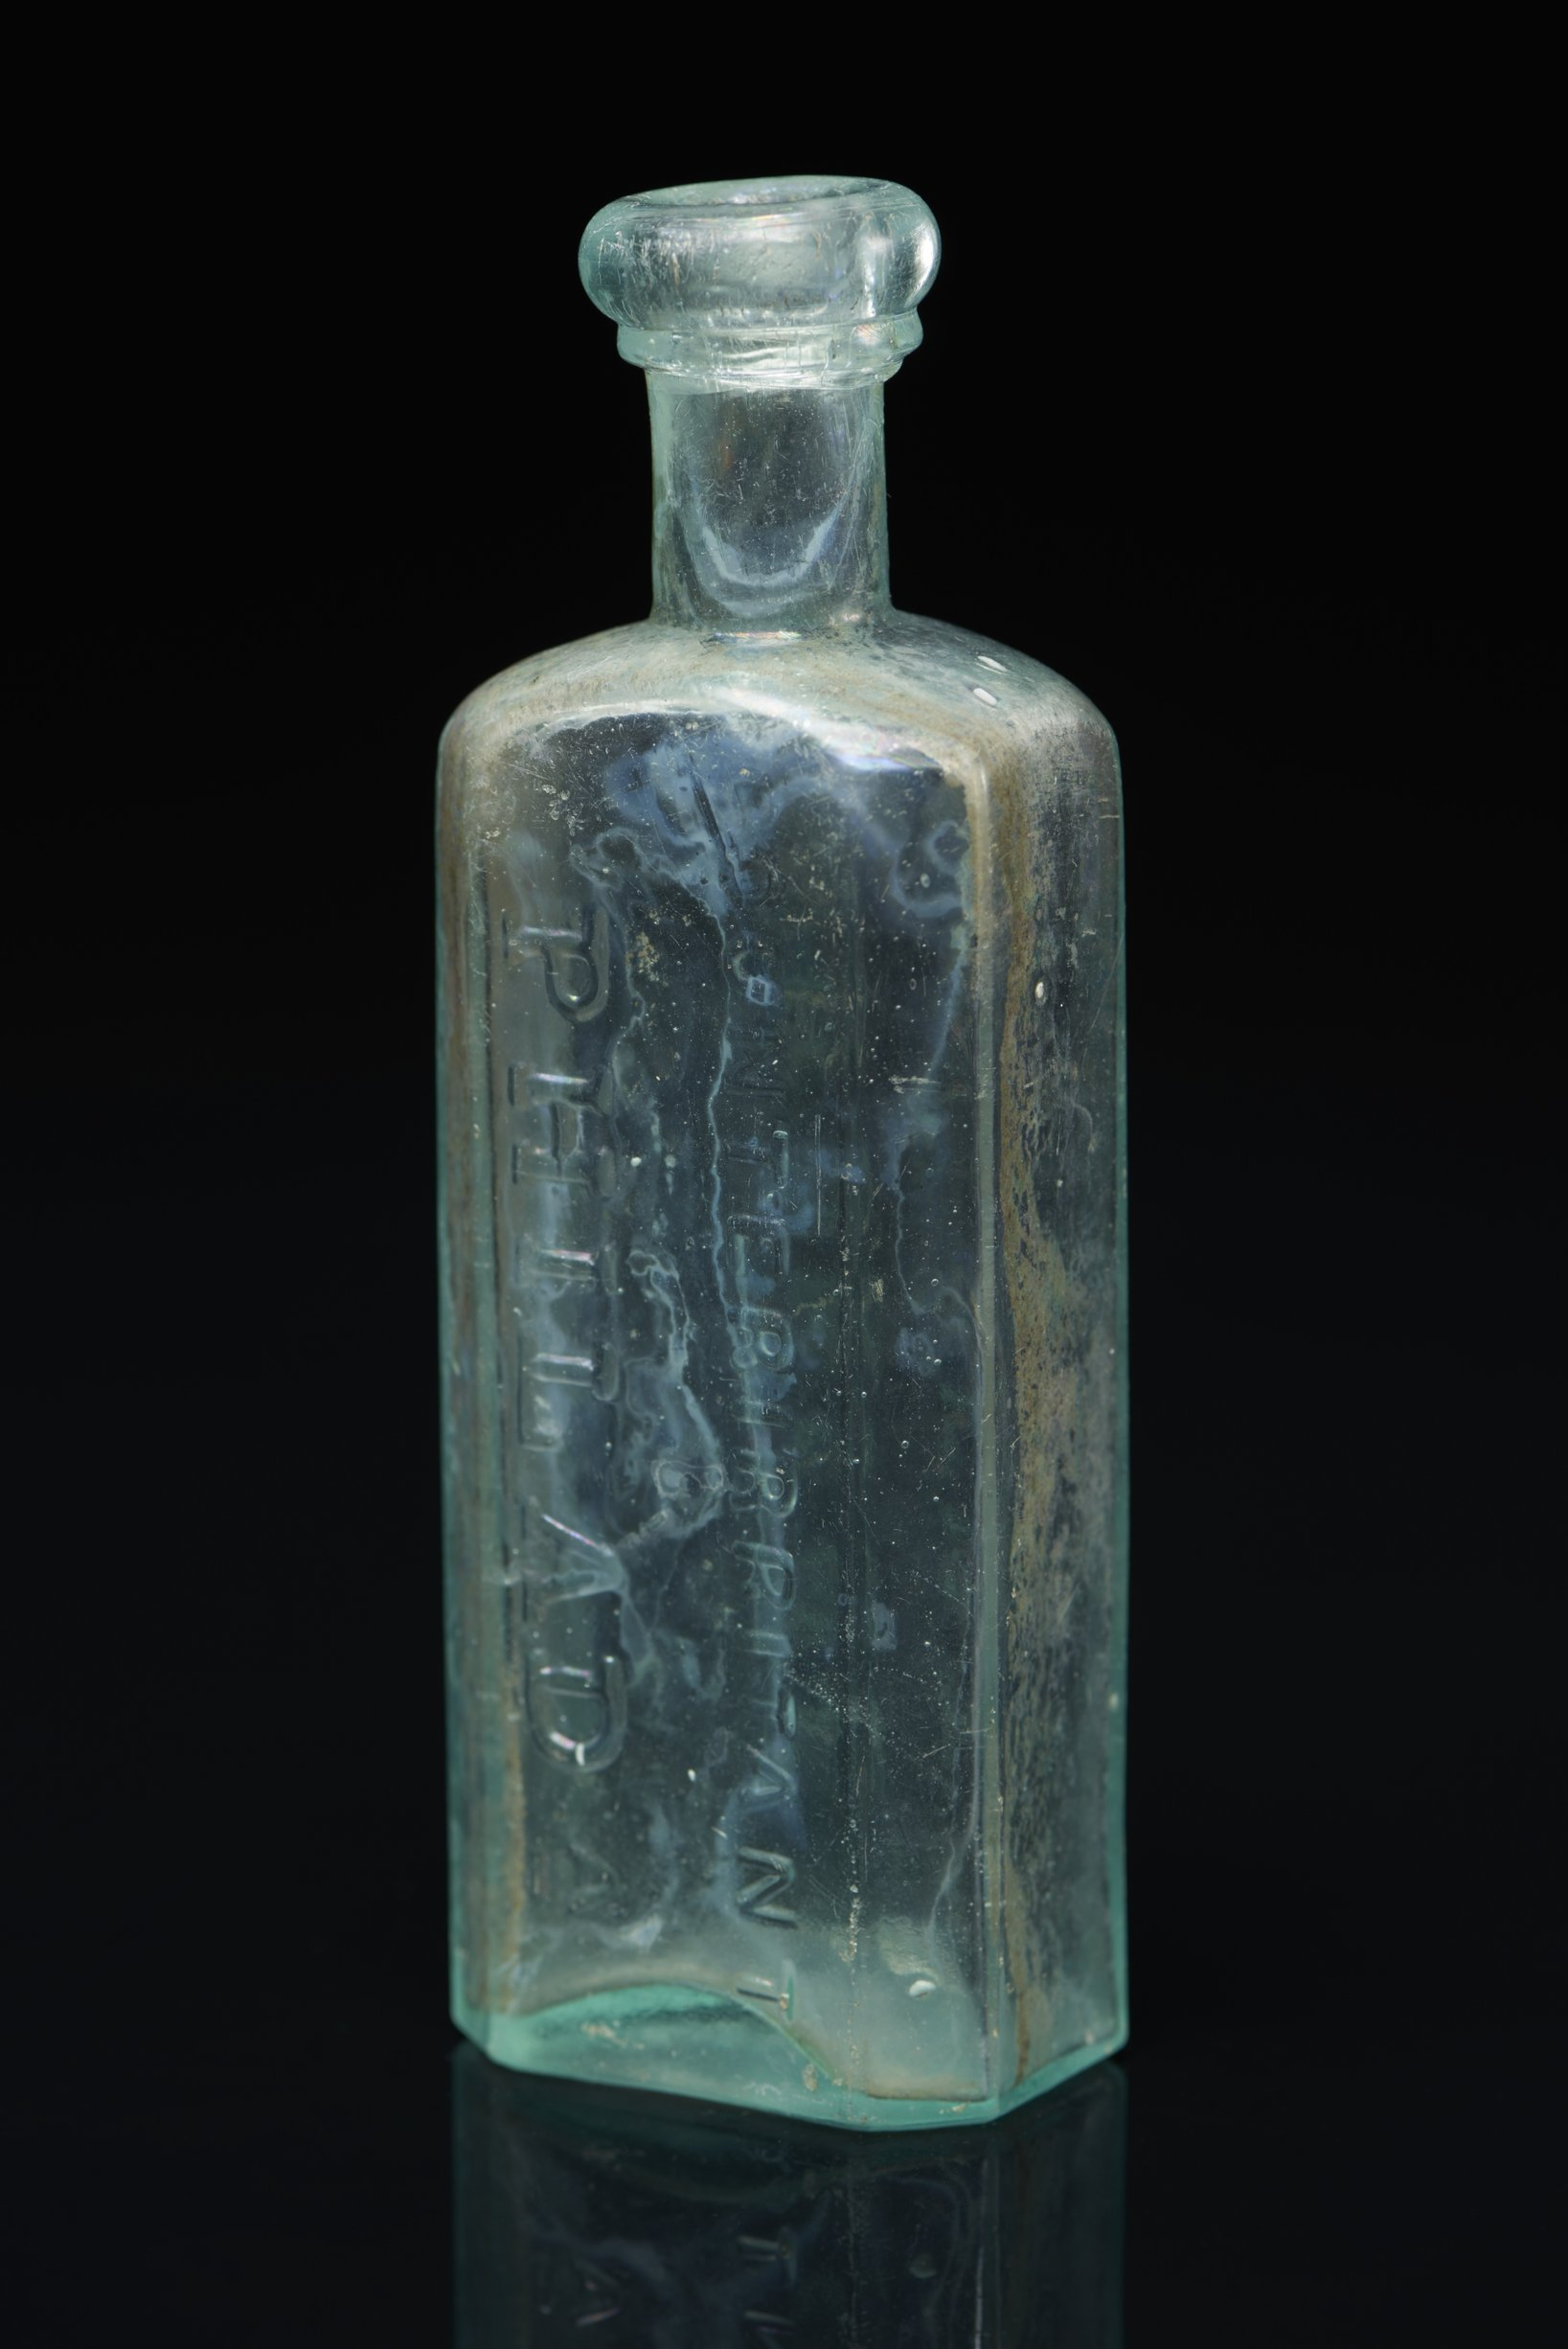 Dr. D. Jayne Liniment or Counterirritant Bottle from the Iowa and Sac and Fox Mission, 14DP384 - 4